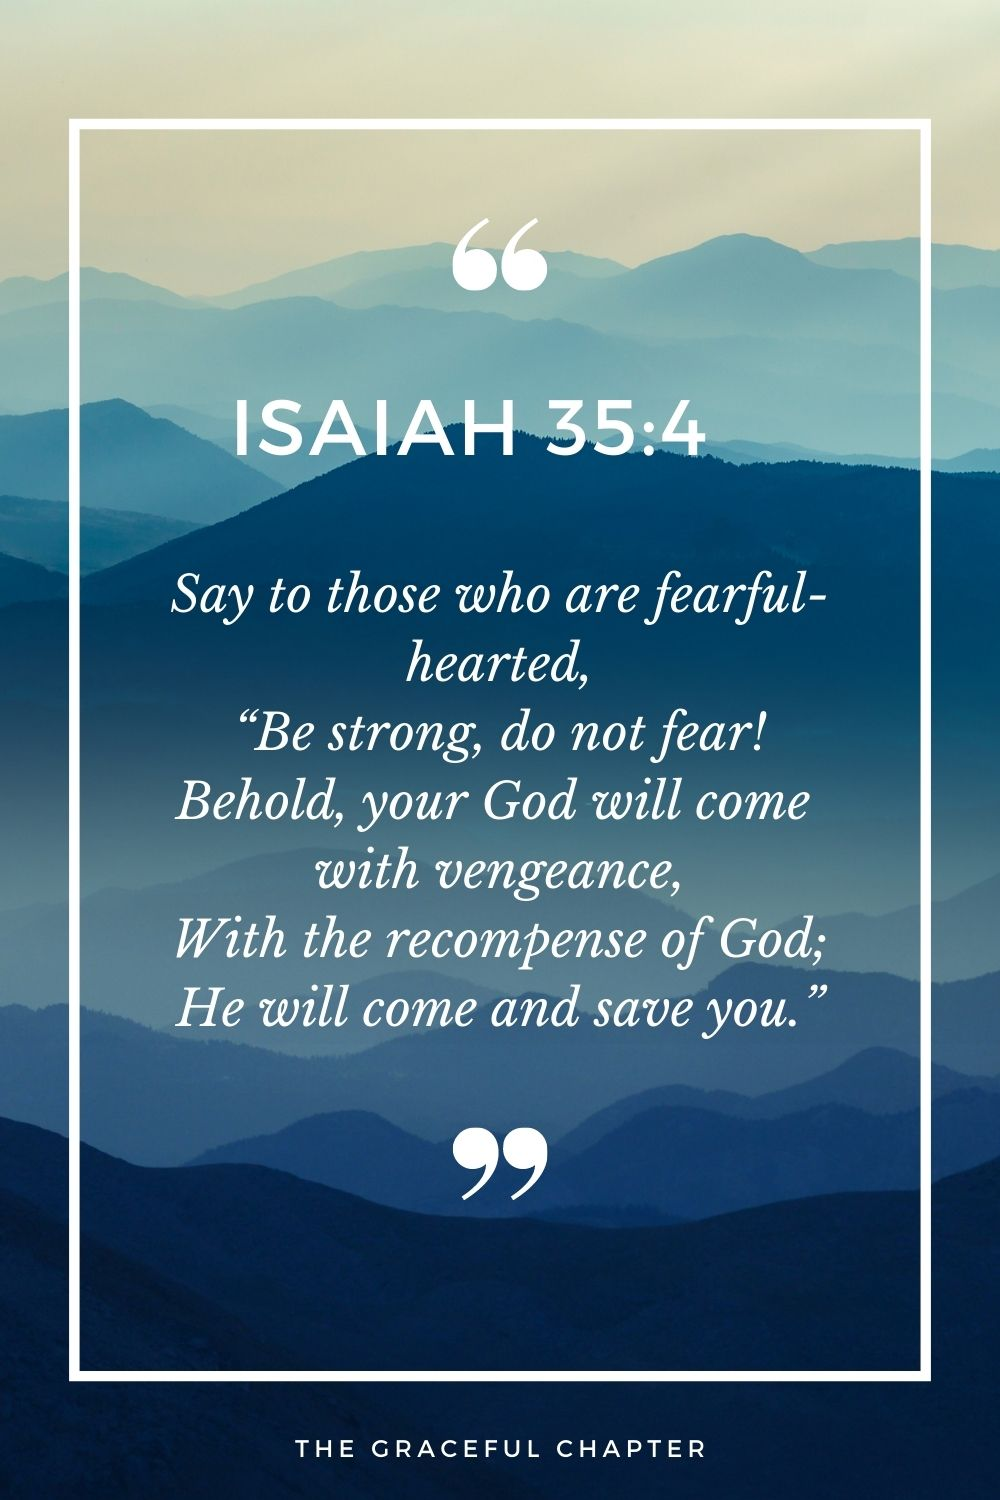 """Say to those who are fearful-hearted, """"Be strong, do not fear! Behold, your God will come  with vengeance, With the recompense of God; He will come and save you."""" Isaiah 35:4"""